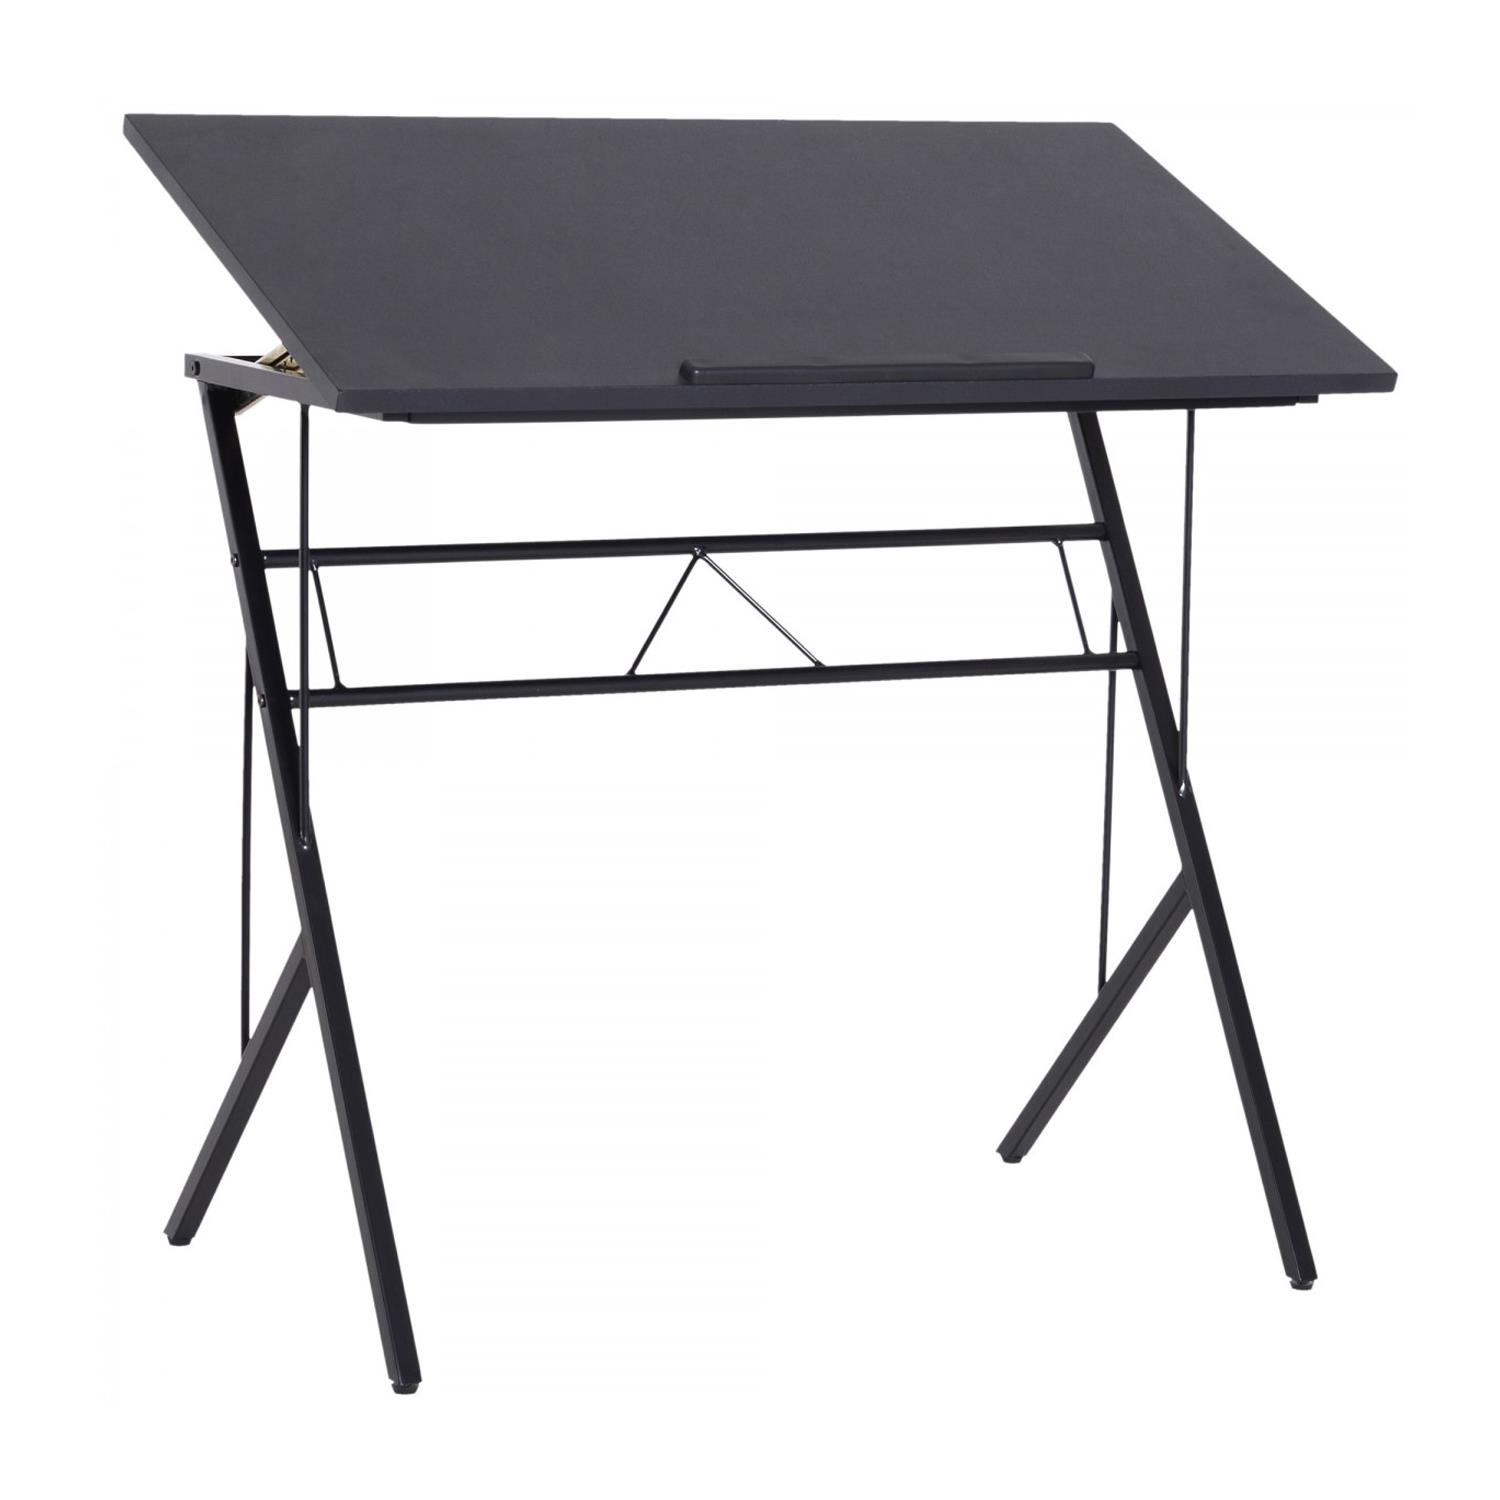 Mesa inclinable BEKIR, 90x50x76-91 cm, en Metal y Madera color Negro